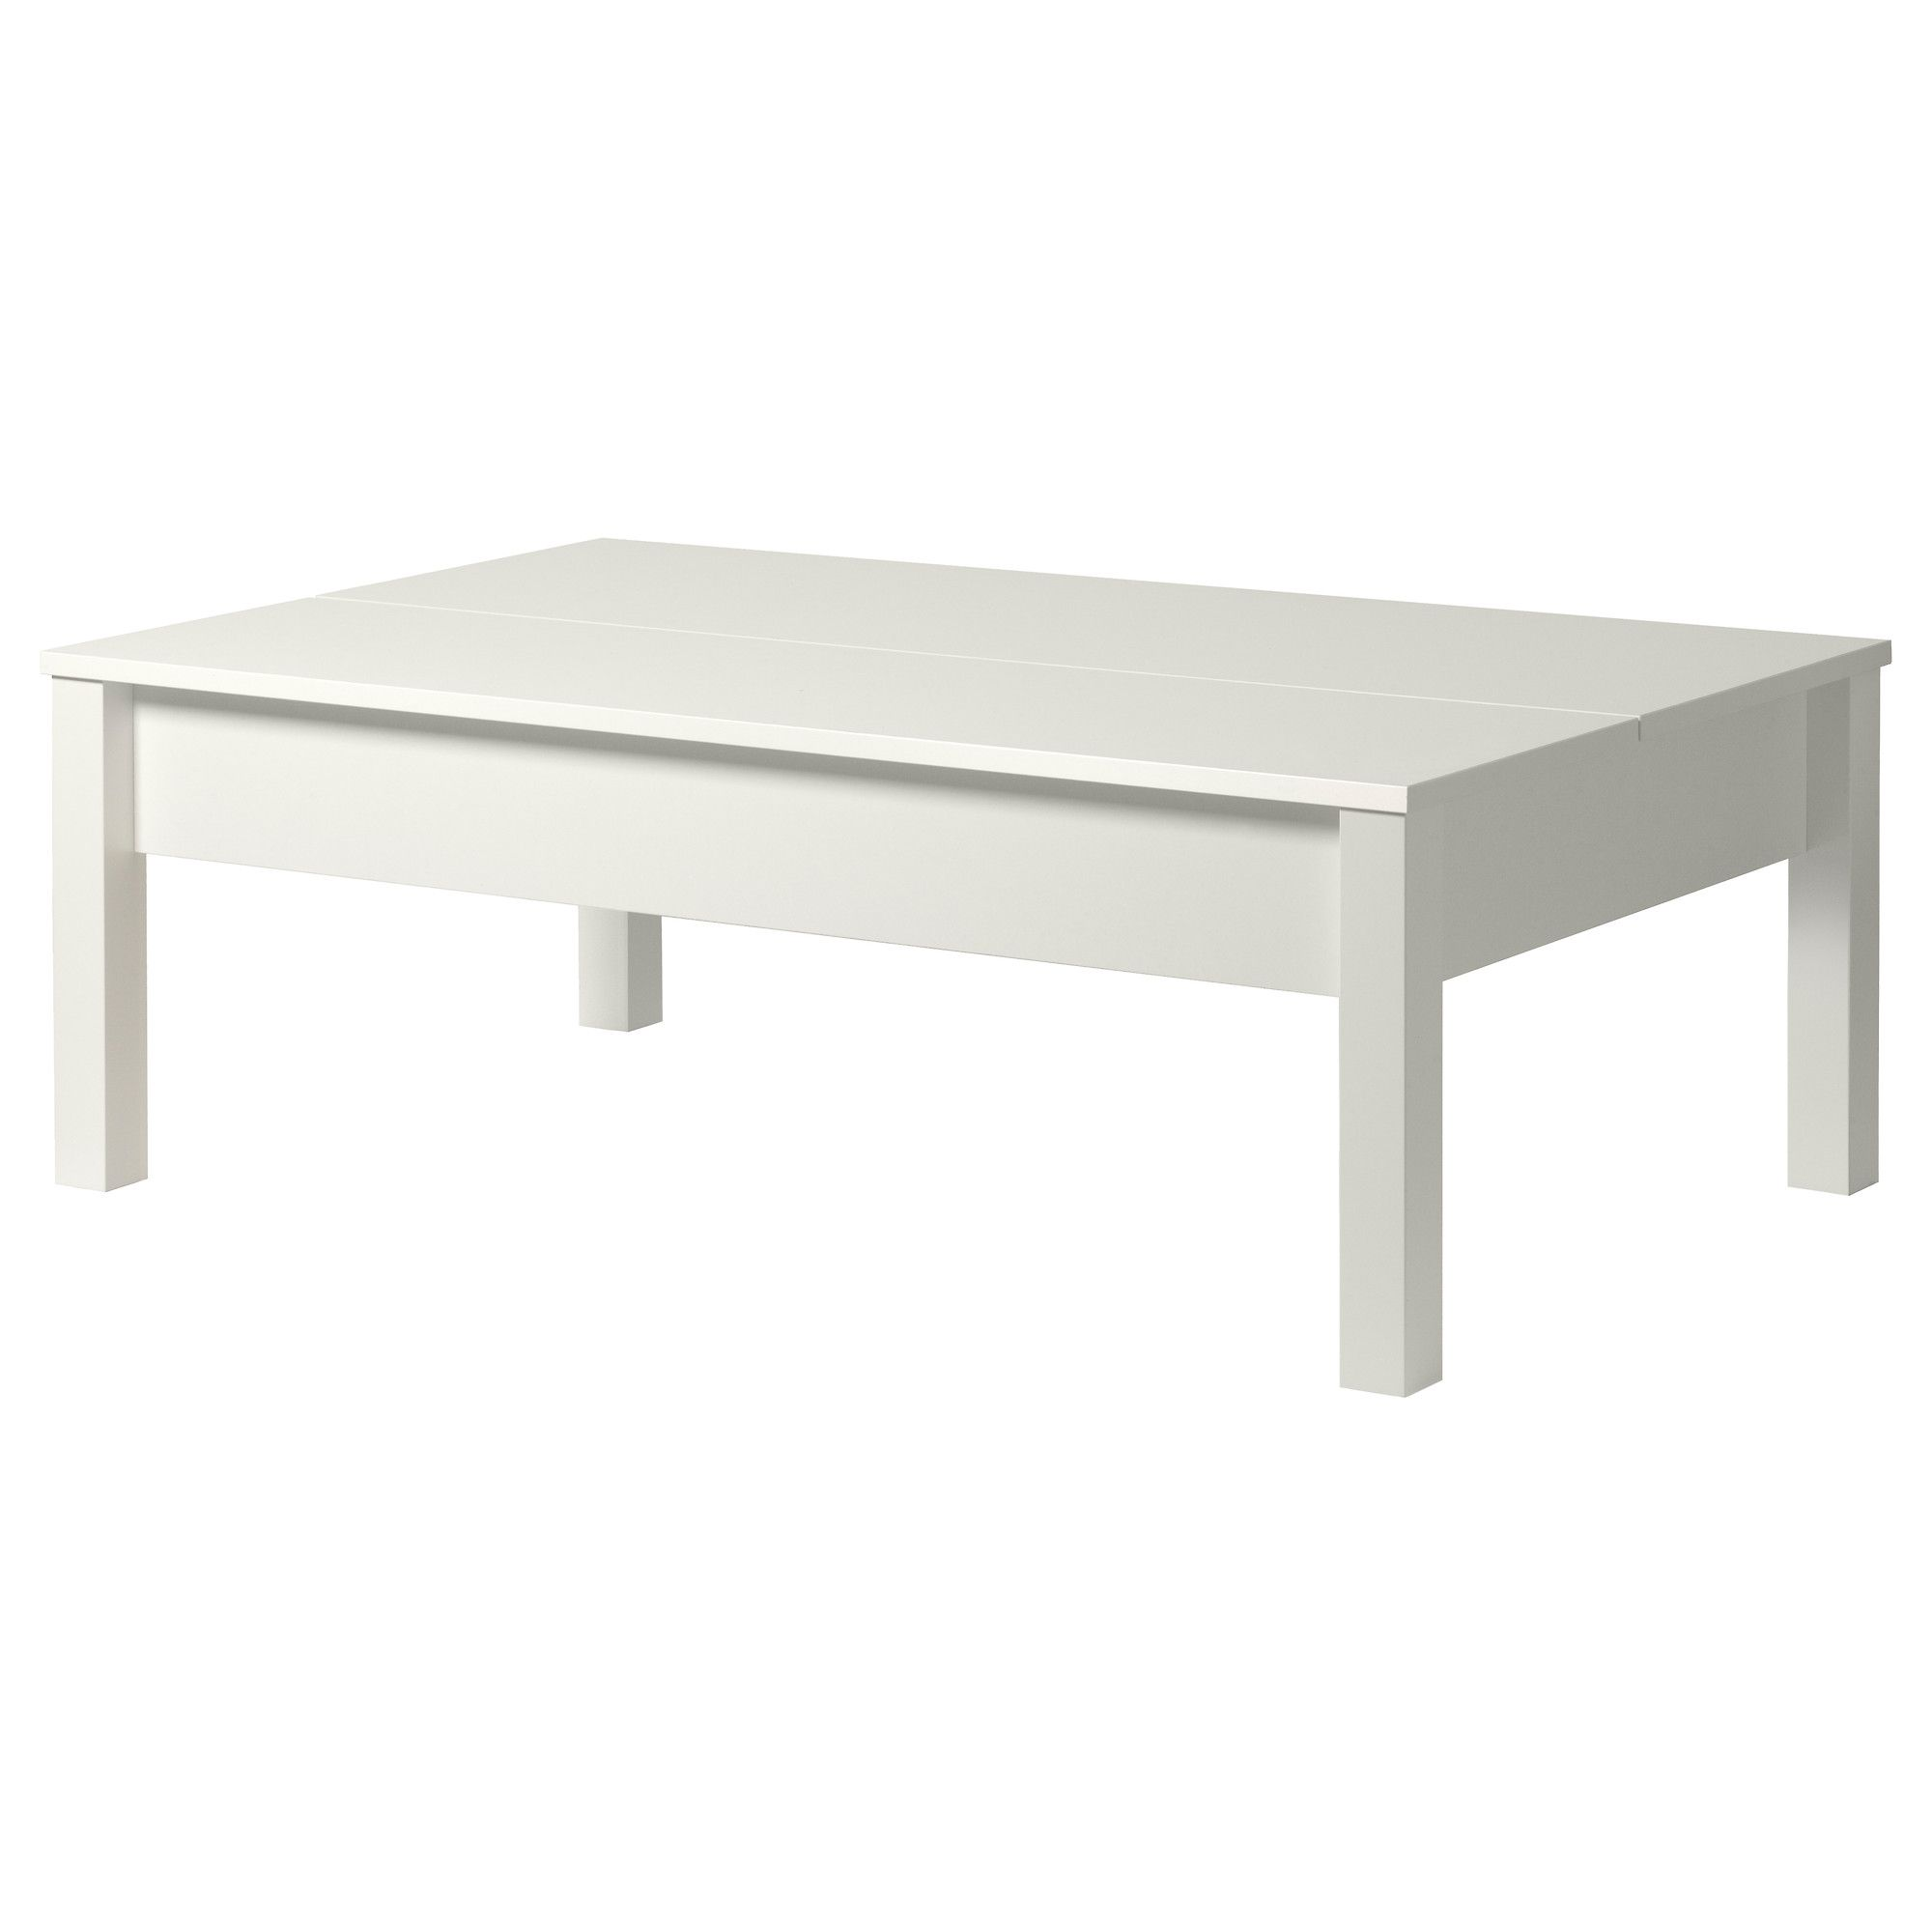 Trulstorp table basse blanc ikea tables basses maison pinterest des - Ikea petite table basse ...